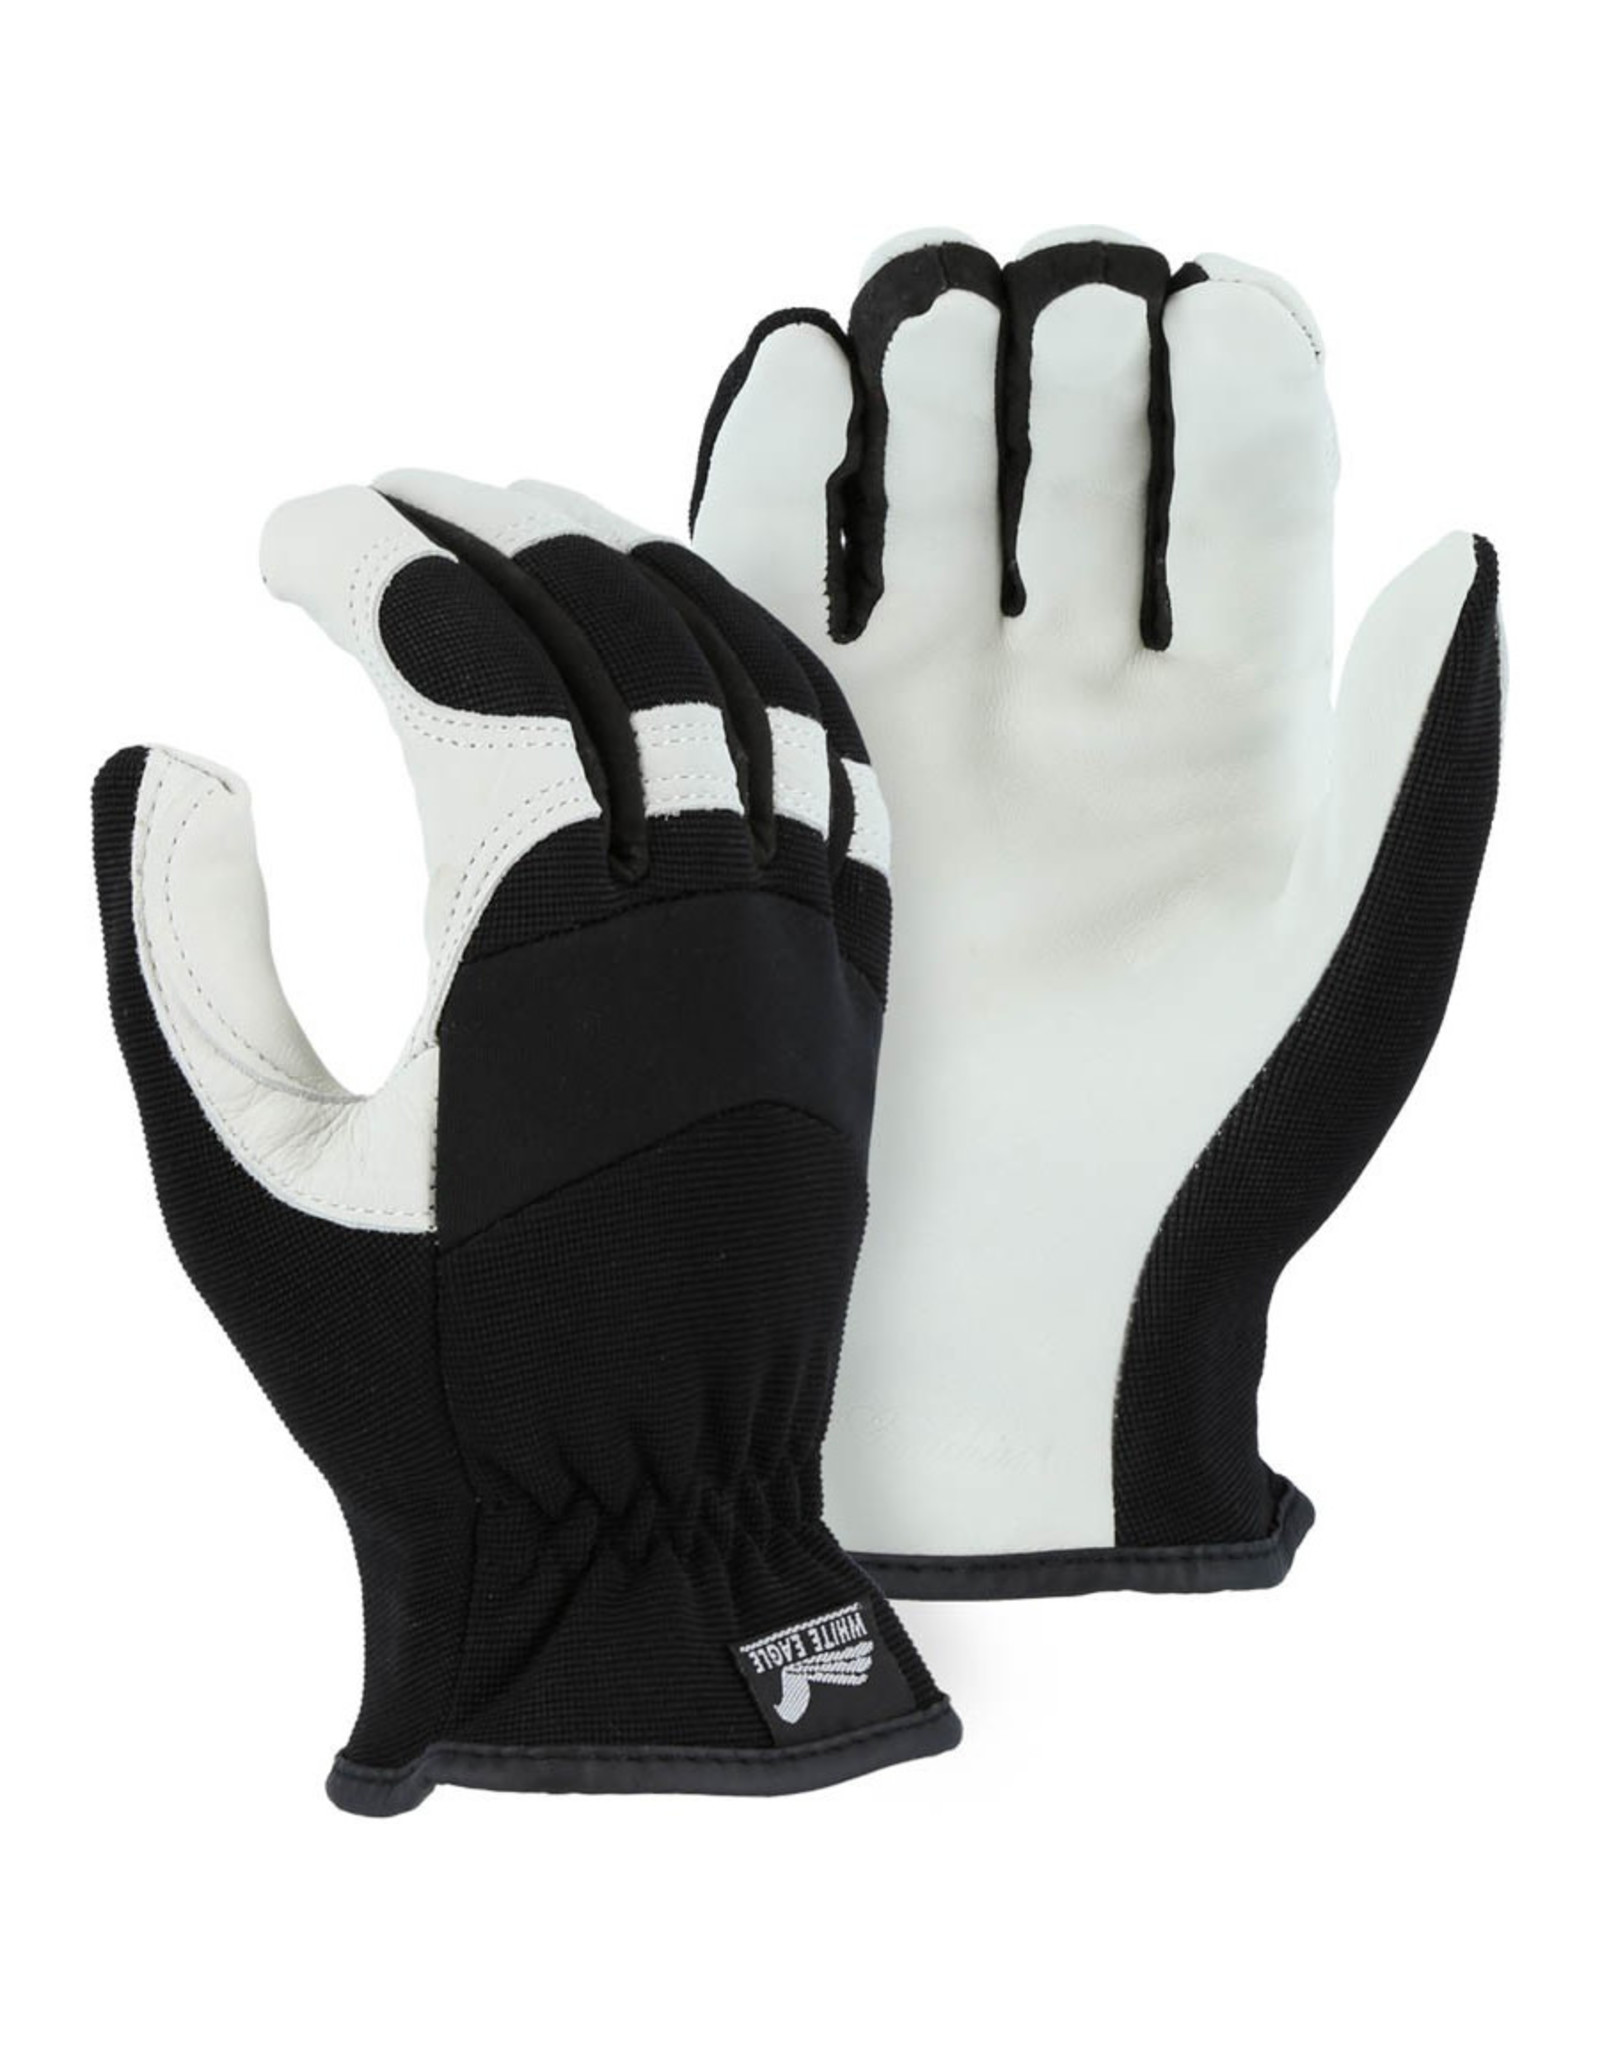 Majestic Glove White Eagle Mechanics Glove With Grain Goatskin Palm And Knit Back